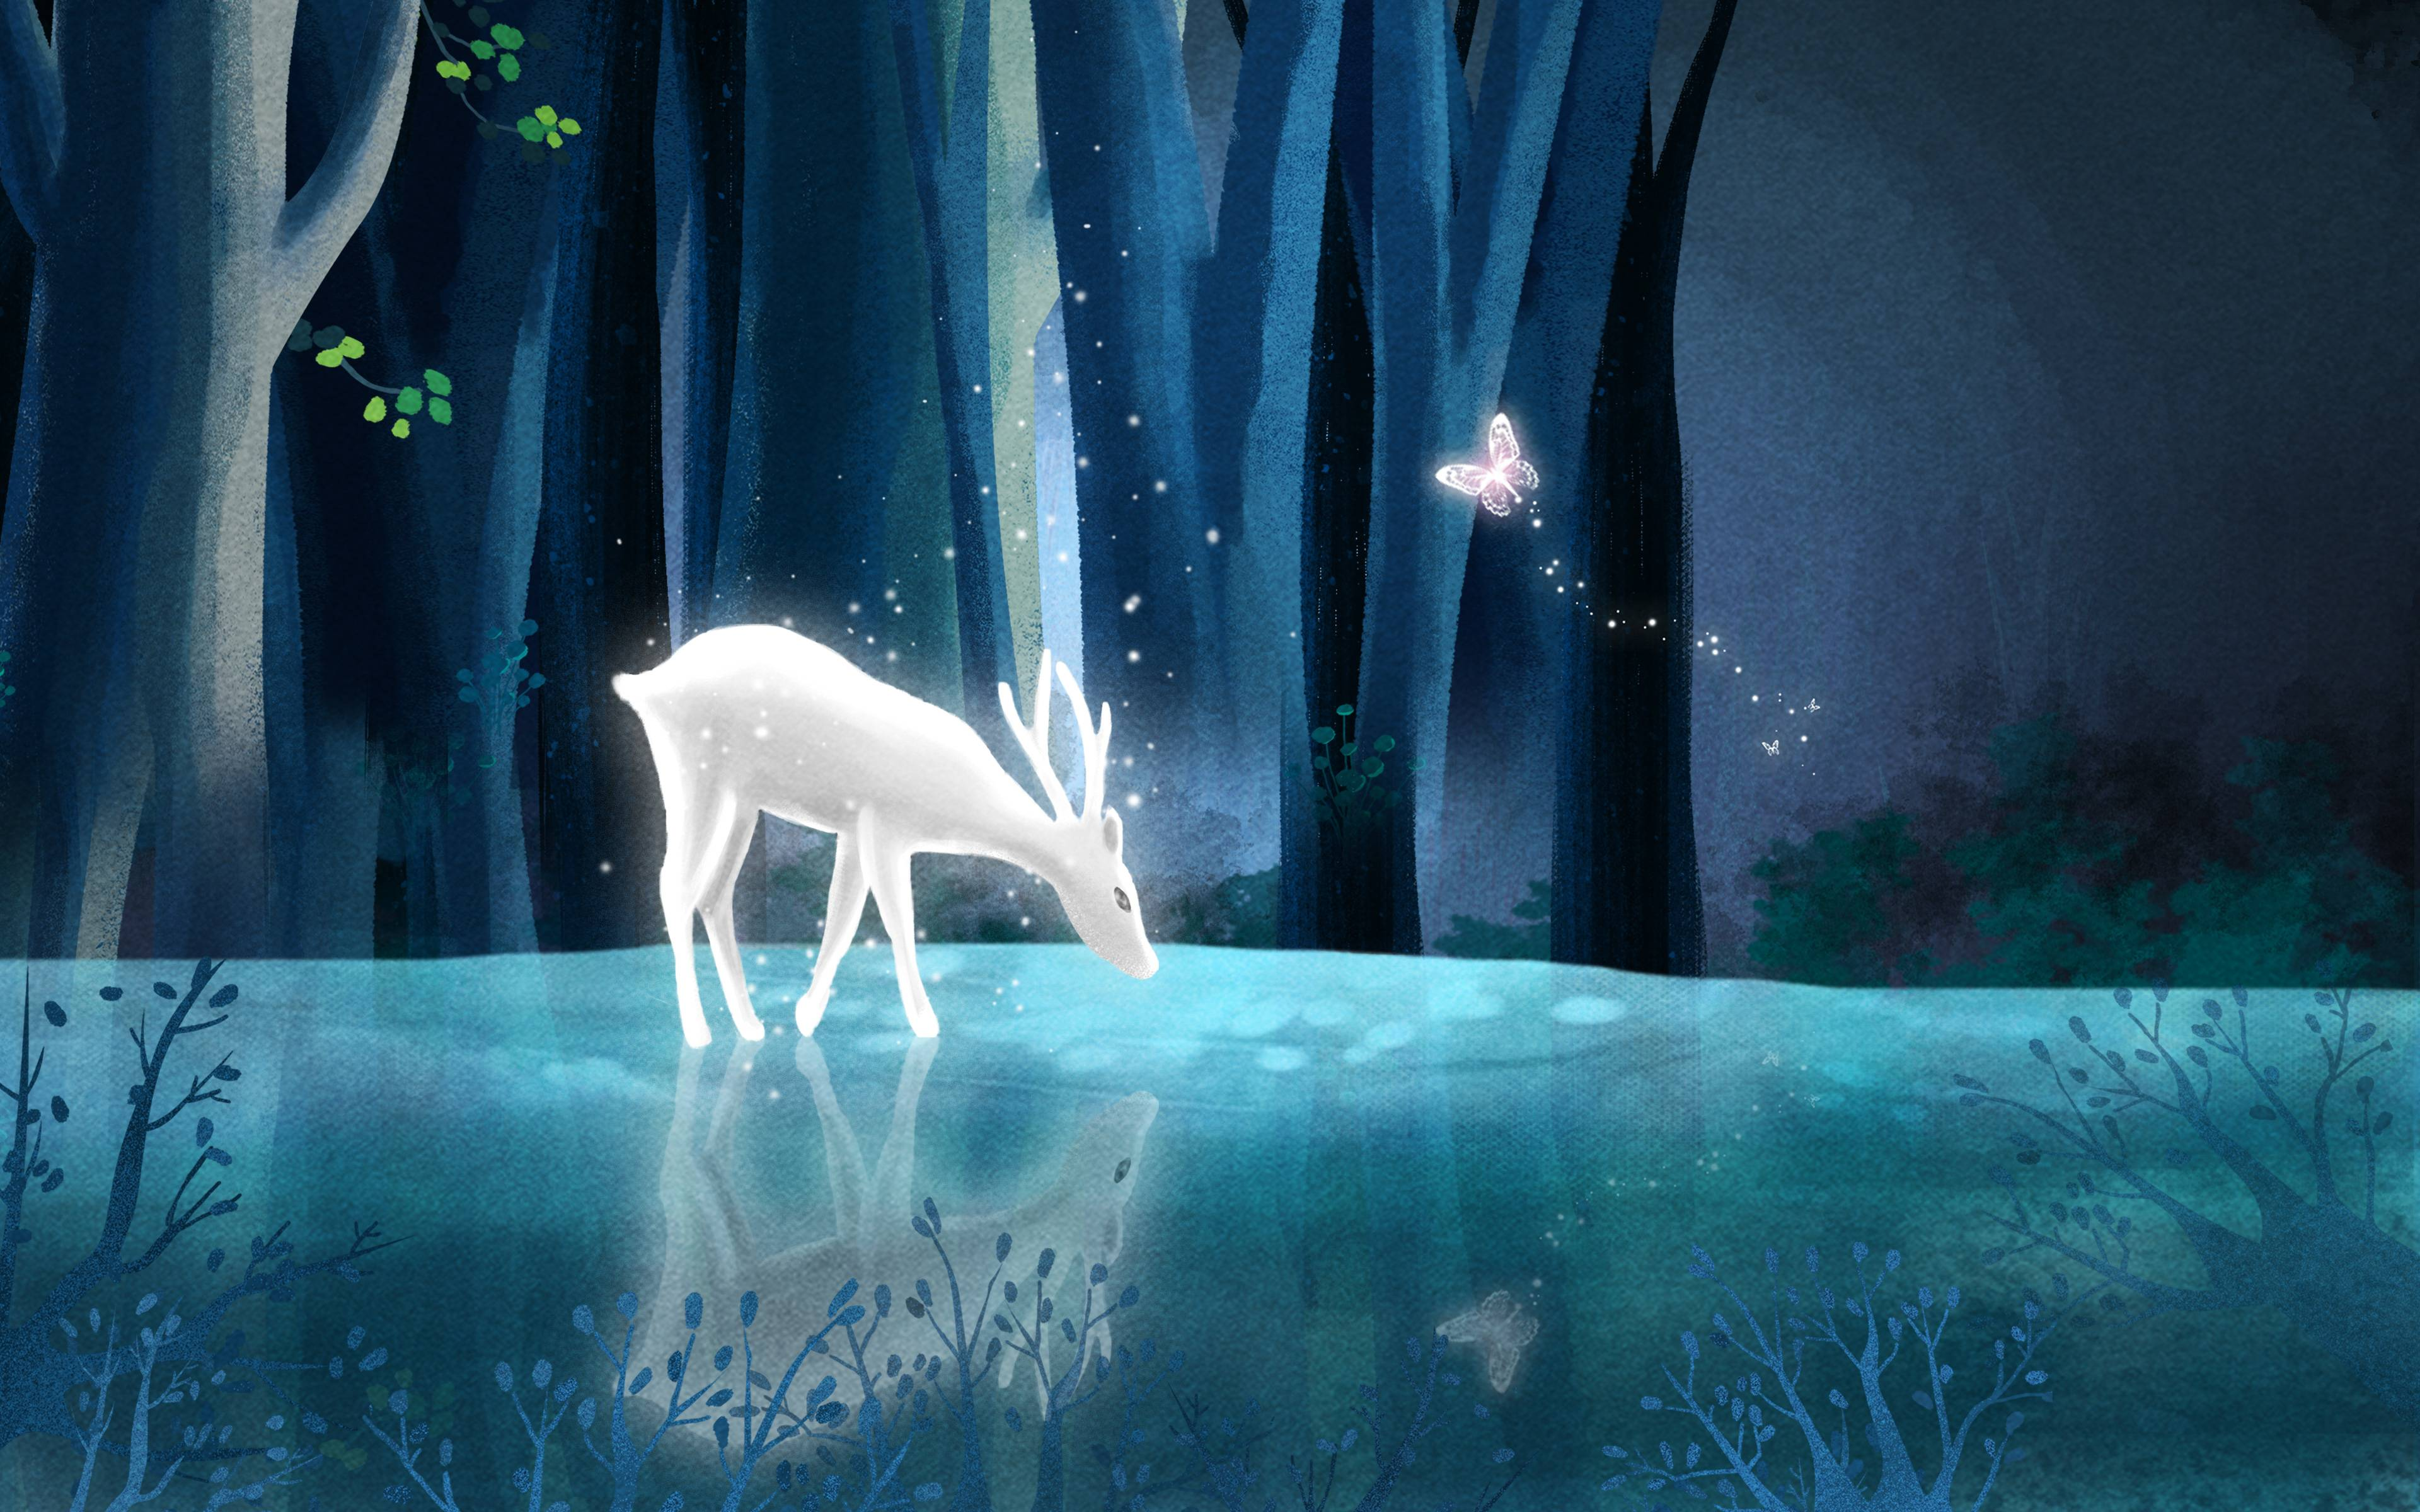 The deer only appears in the deep forest